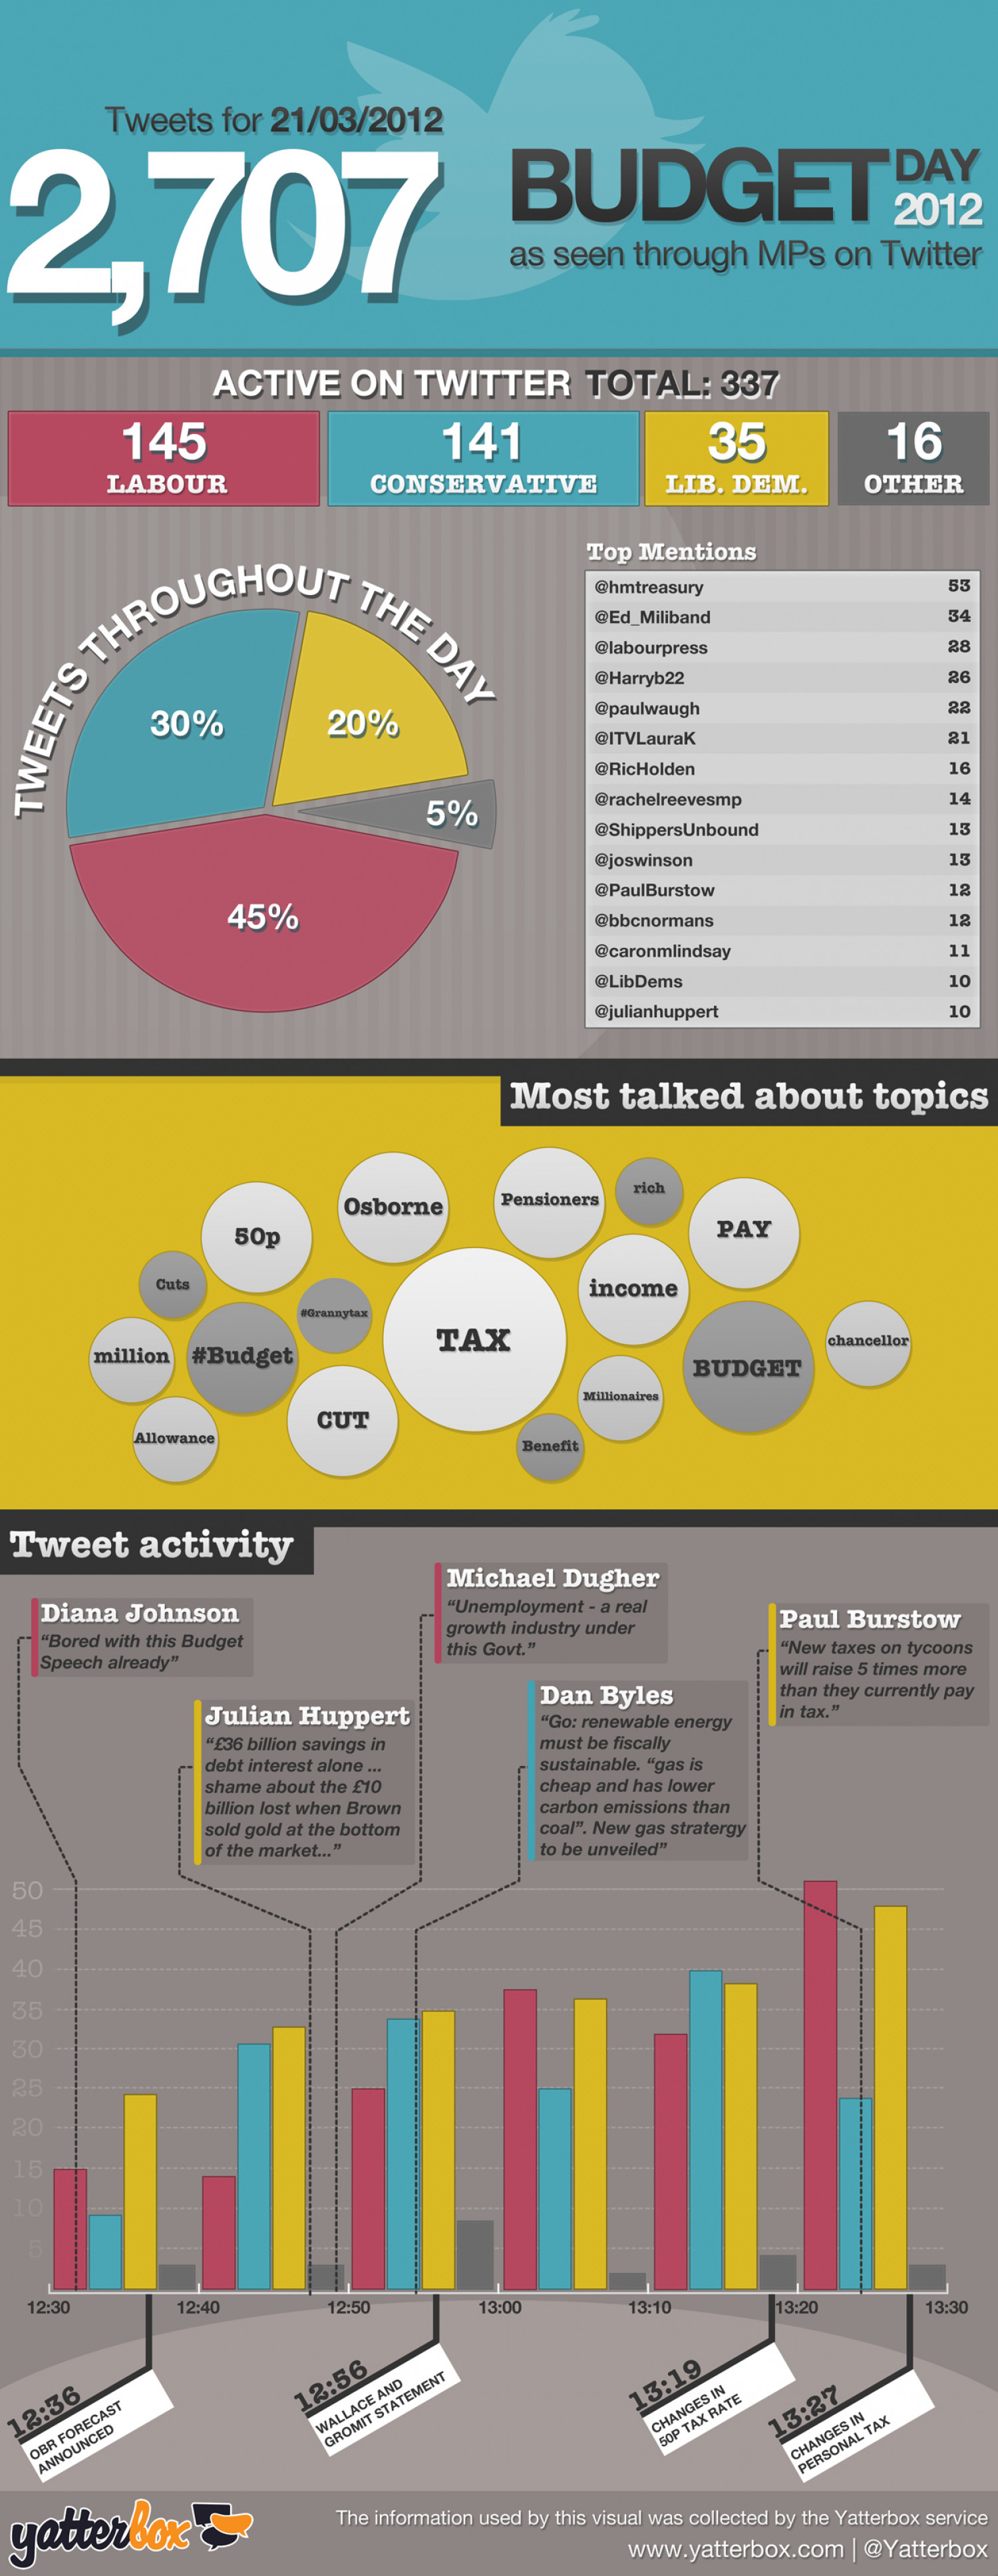 Budget Day 2012 as seen through UK MPs on Twitter Infographic